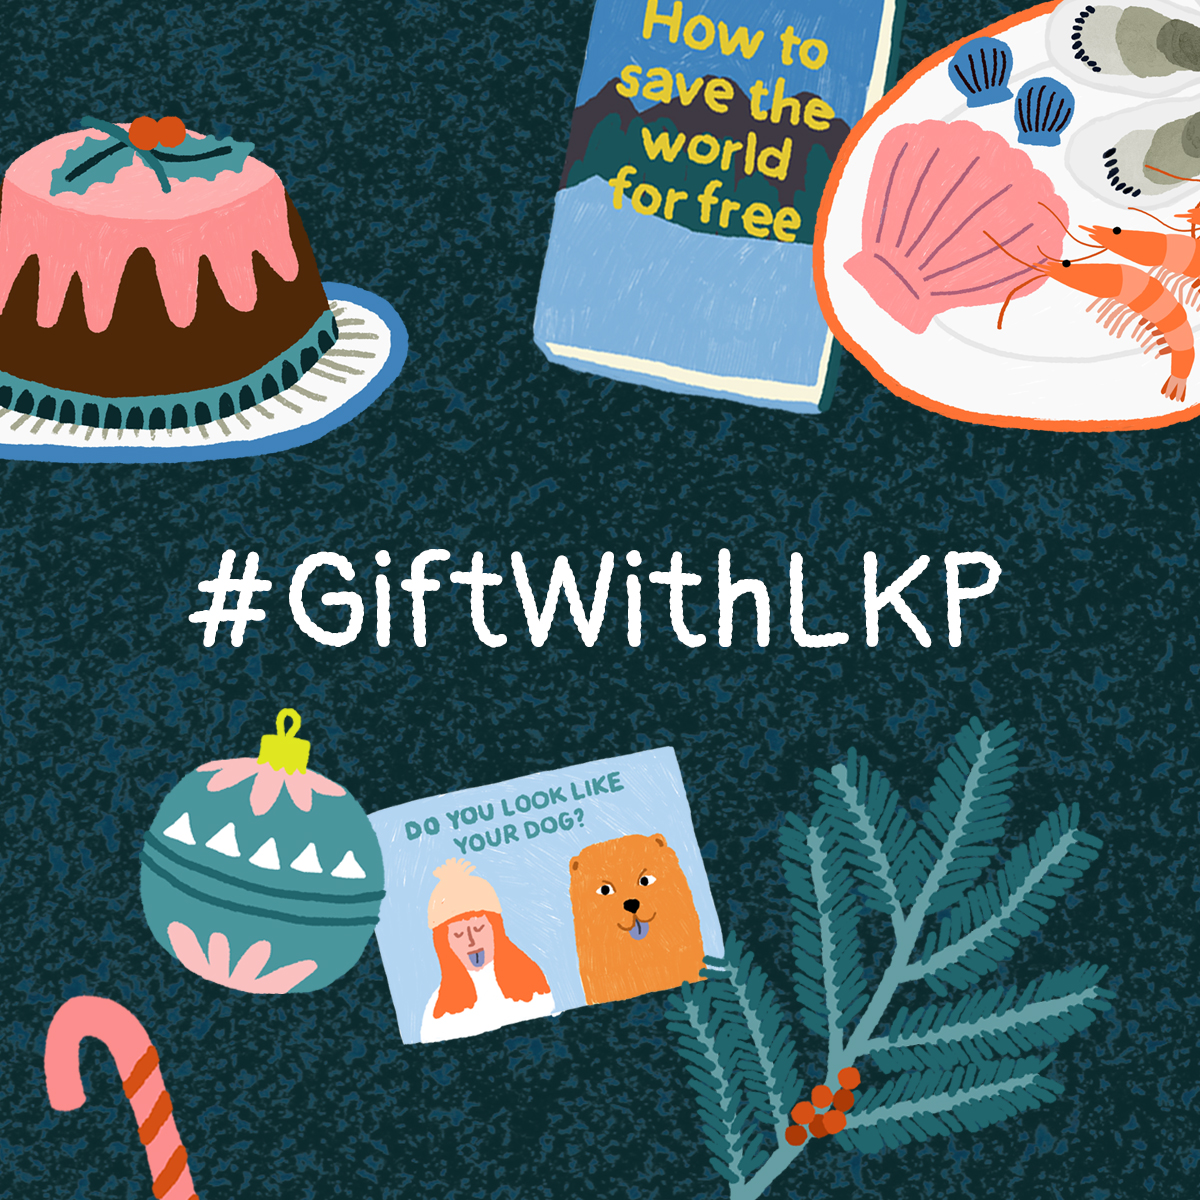 #giftwithlkp